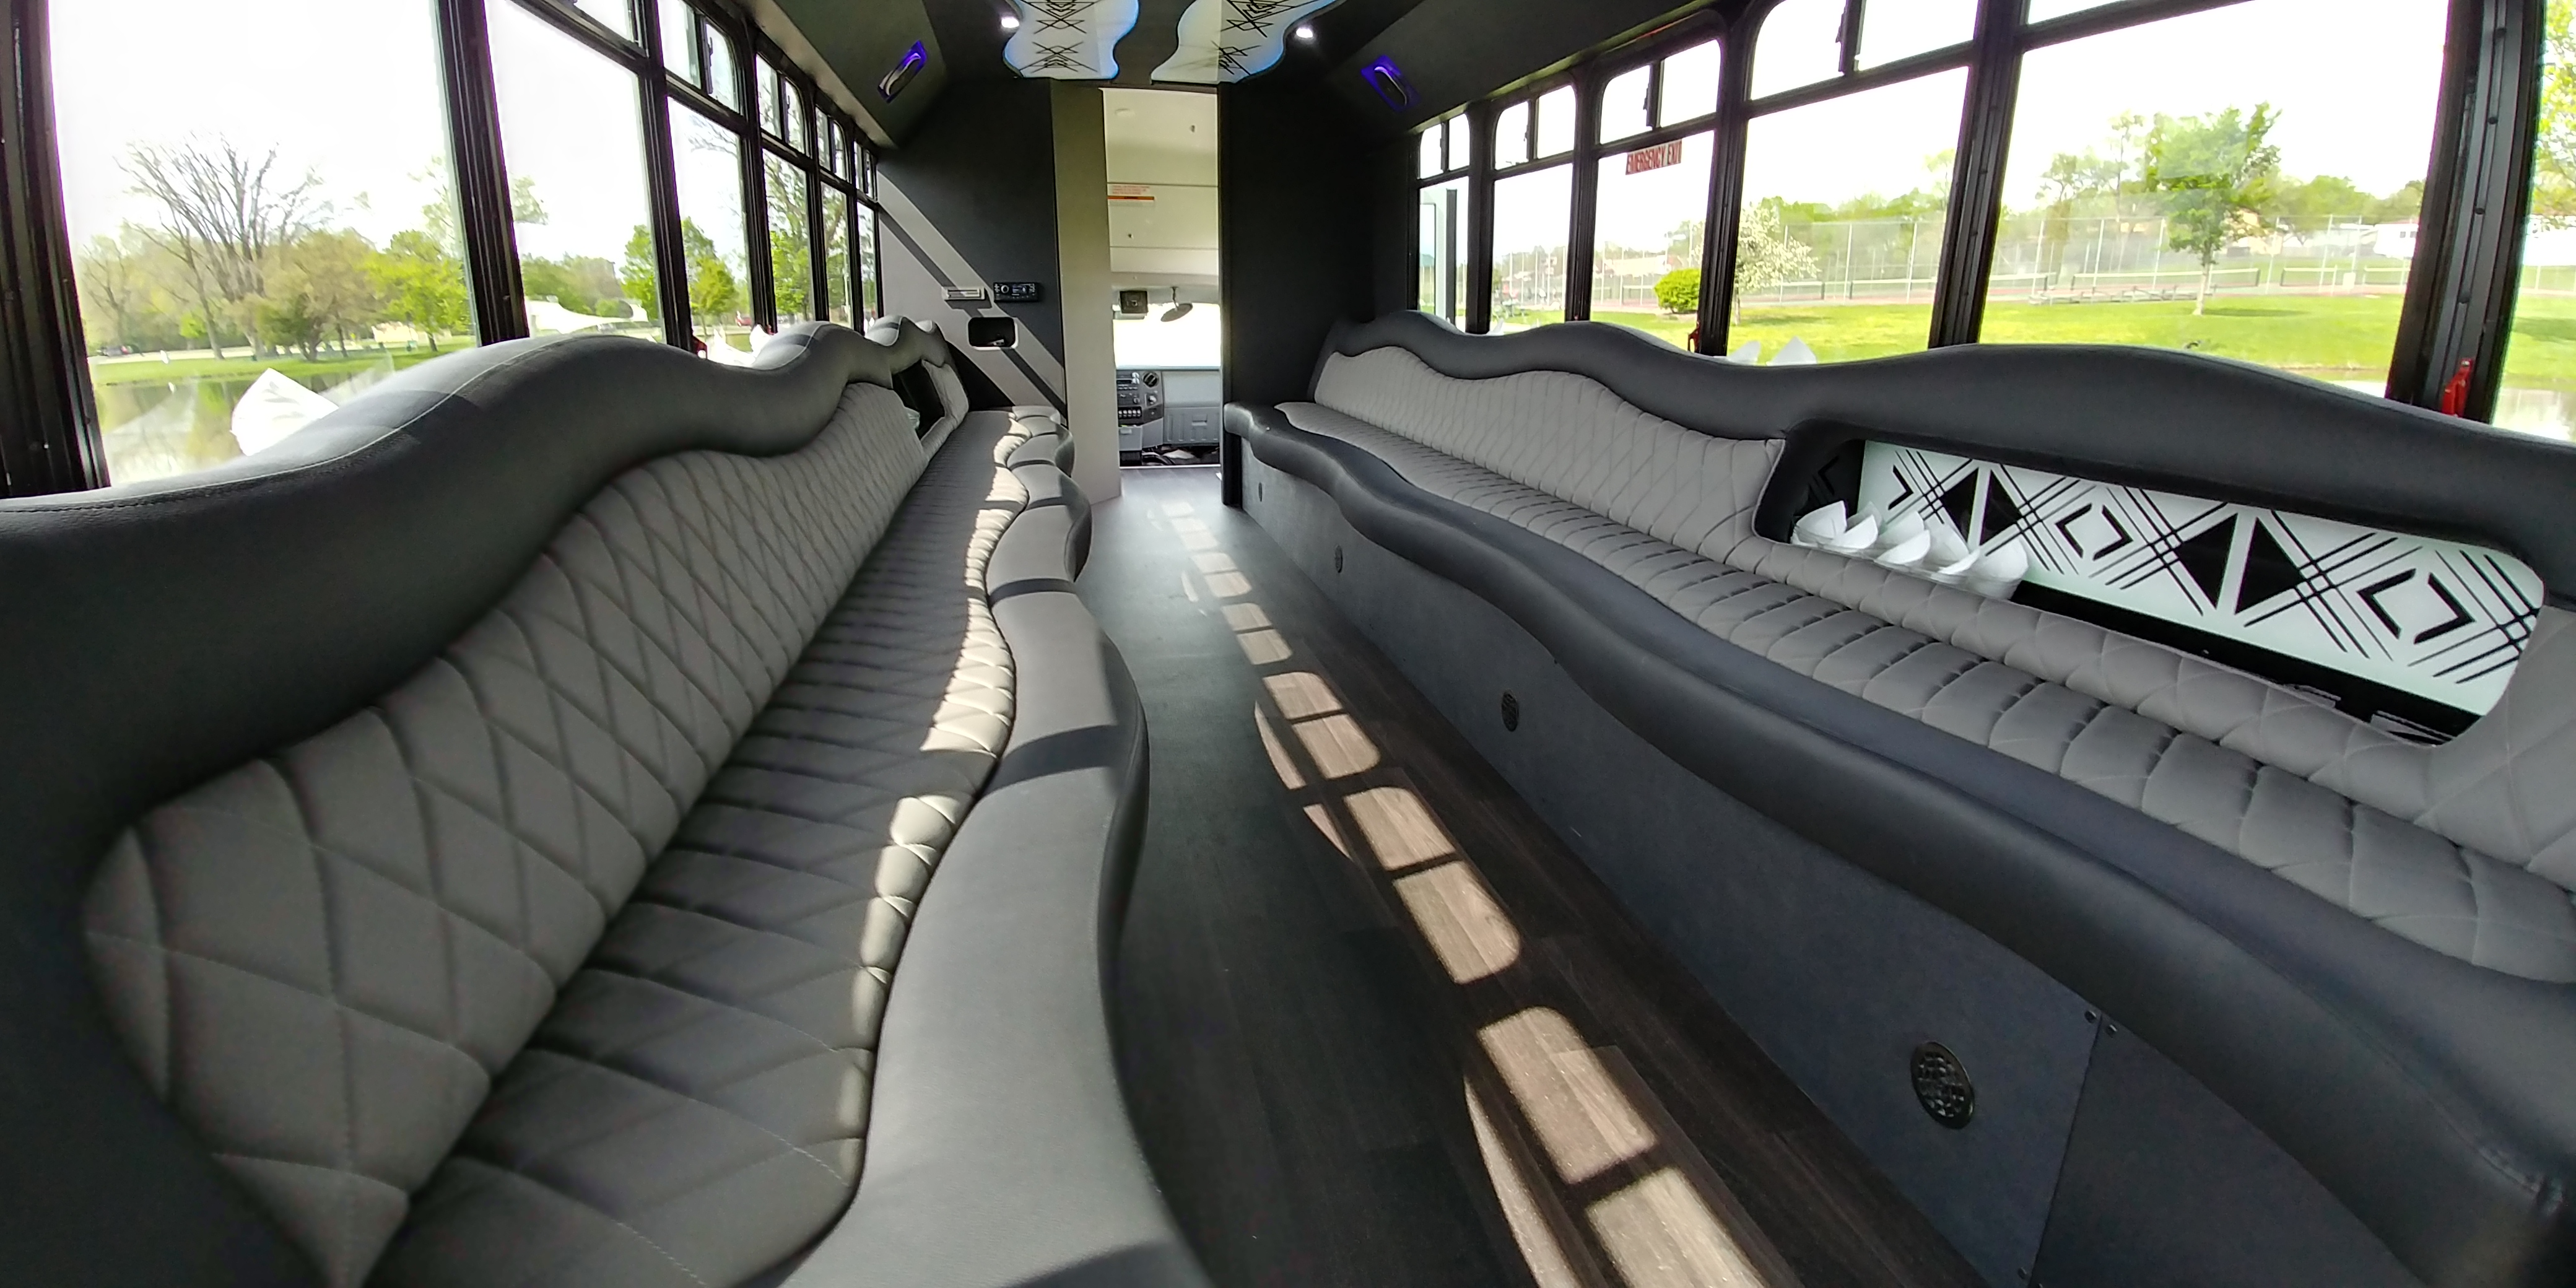 28 Passenger Luxury Limo Bus Interior 9